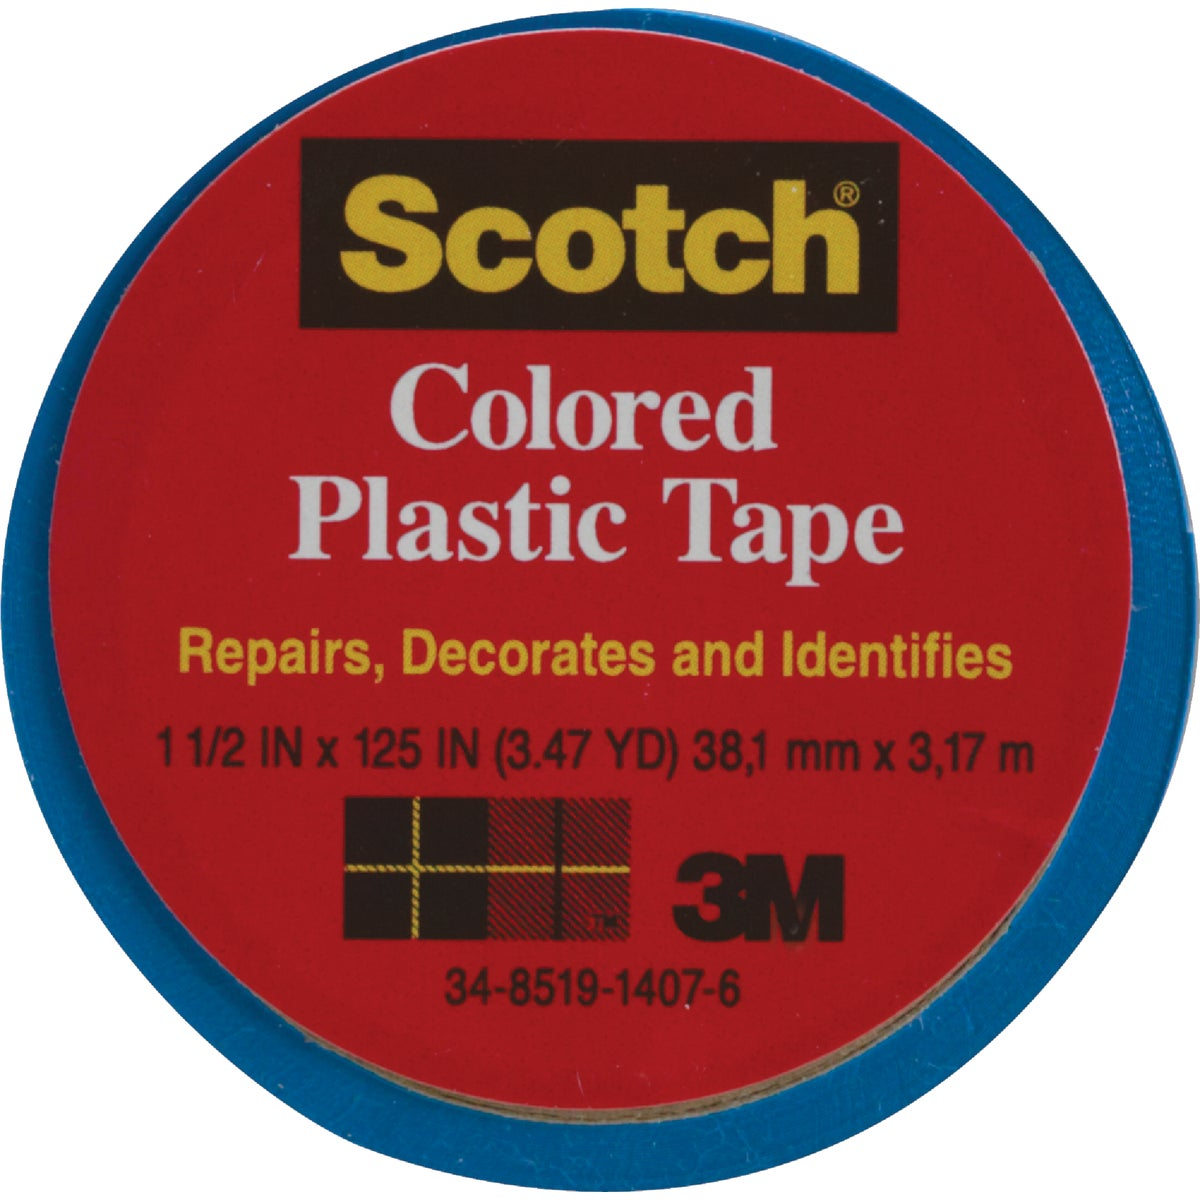 "SCOTCH 1-1/2""BLU PL TAPE - 191 by 3m Co"